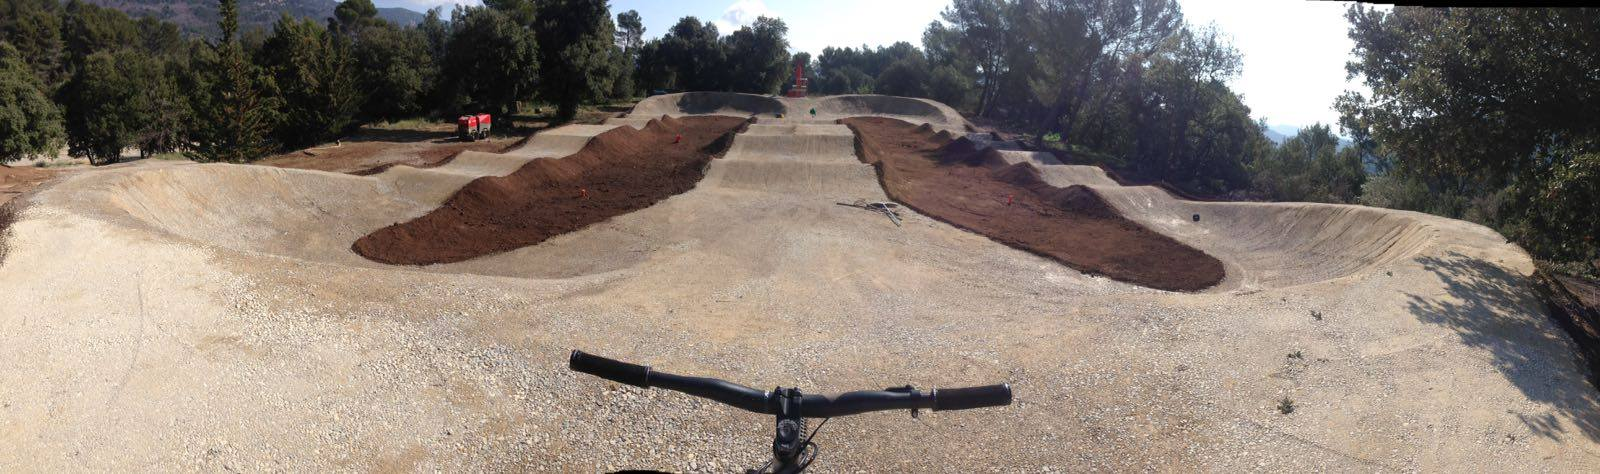 pumptrack 3